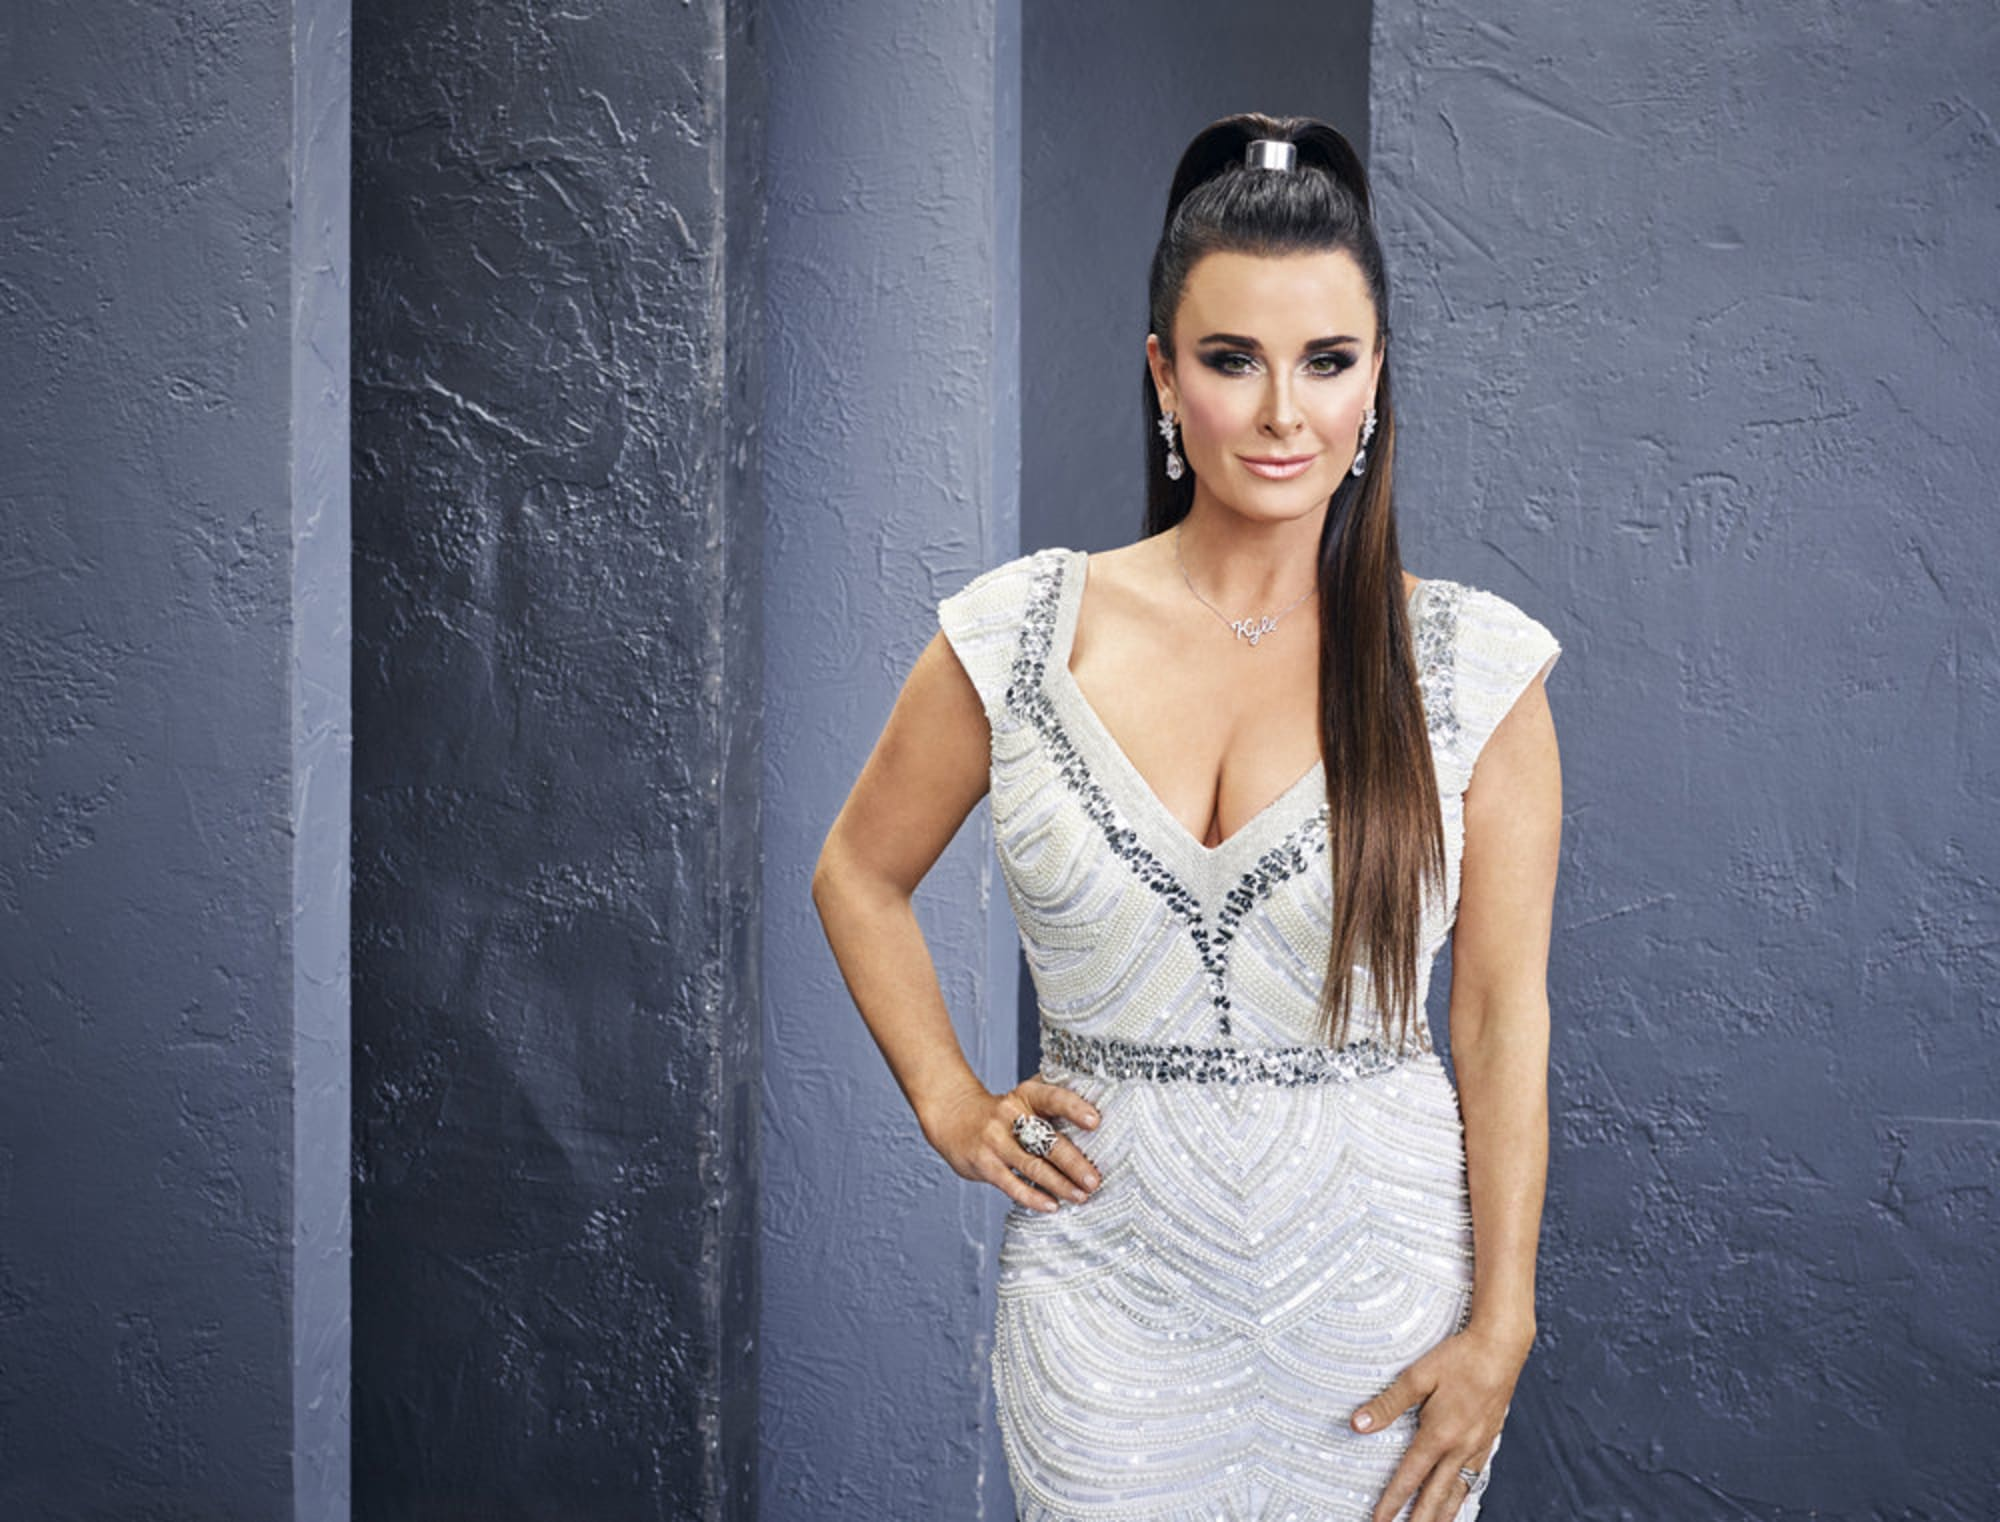 Real Housewives of Beverly Hills: Let's talk about Kyle Richards ring